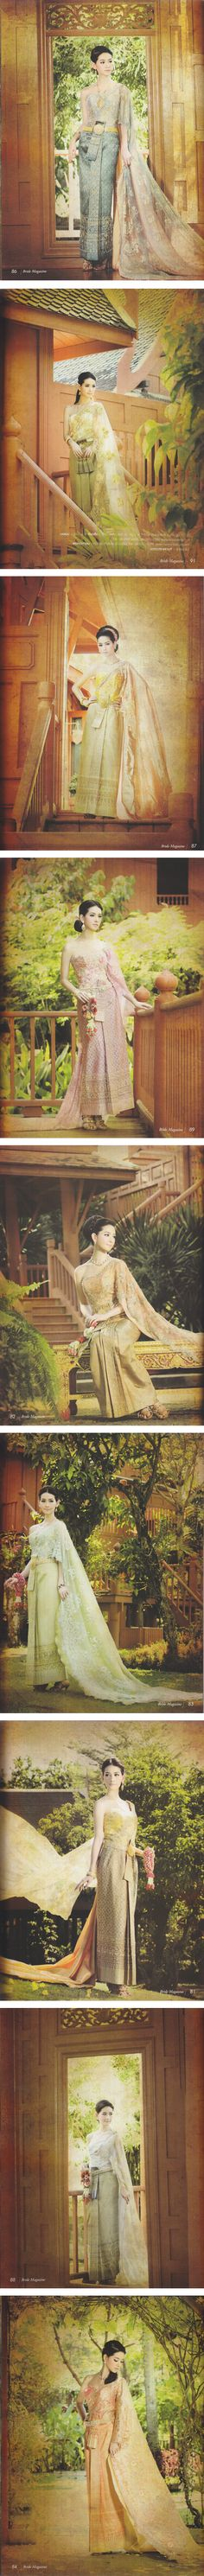 A traditional Thai dress. A dress and look that portrays elegance and class. For more on the traditional style of Thailand on theculturetrip.com